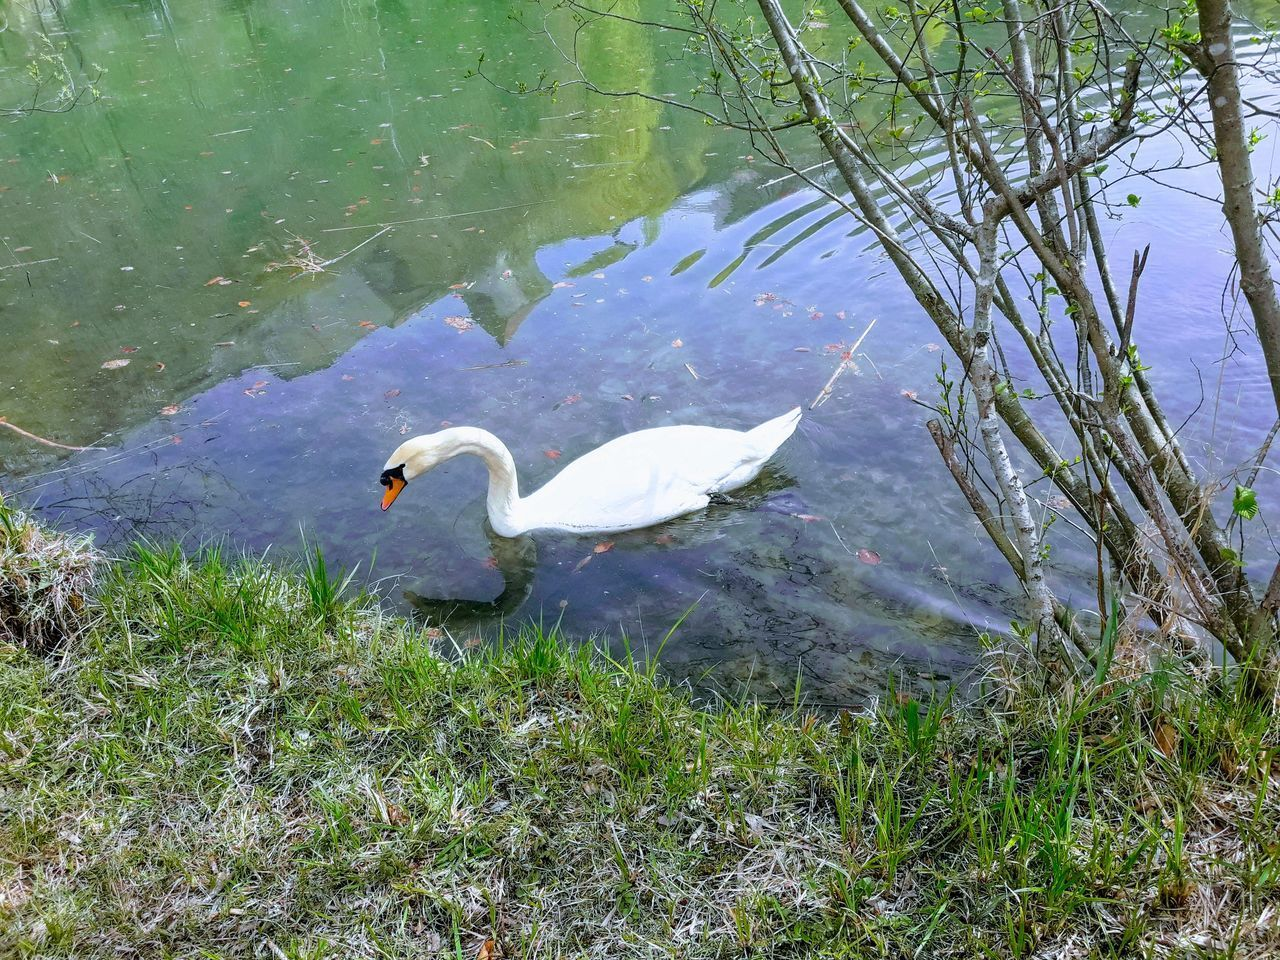 animal wildlife, animal themes, vertebrate, animals in the wild, bird, water, animal, lake, one animal, swan, nature, day, plant, no people, lakeshore, grass, high angle view, water bird, white color, floating on water, animal neck, animal family